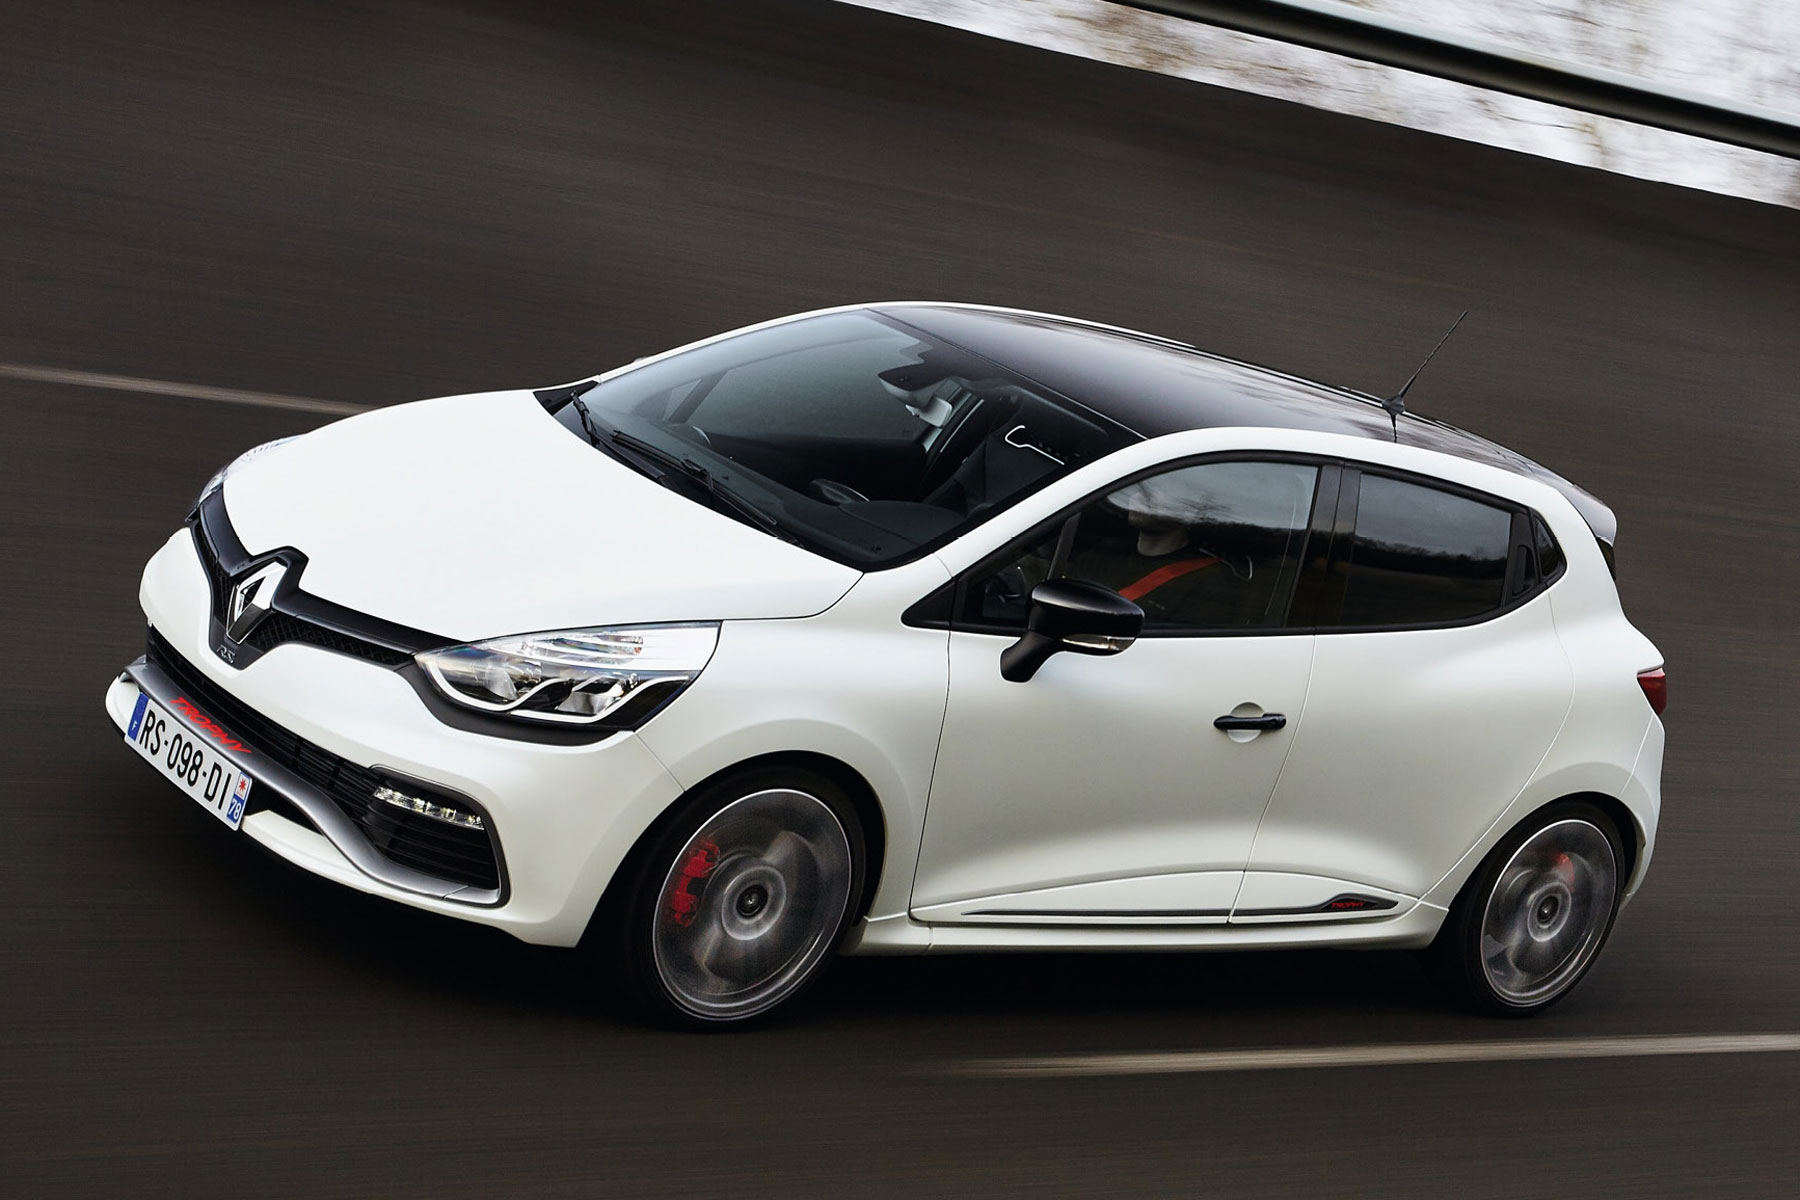 Renault Clio 220 Trophy to cost less than £22,000